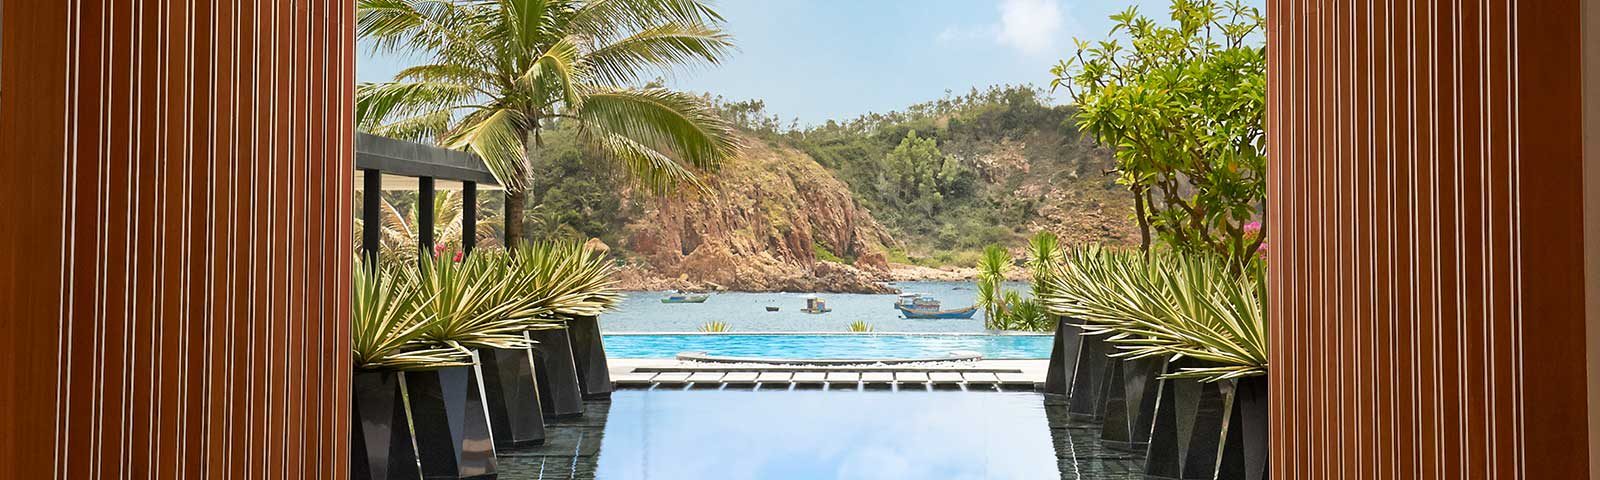 Special Quy Nhon Hotel Deals for accommodation